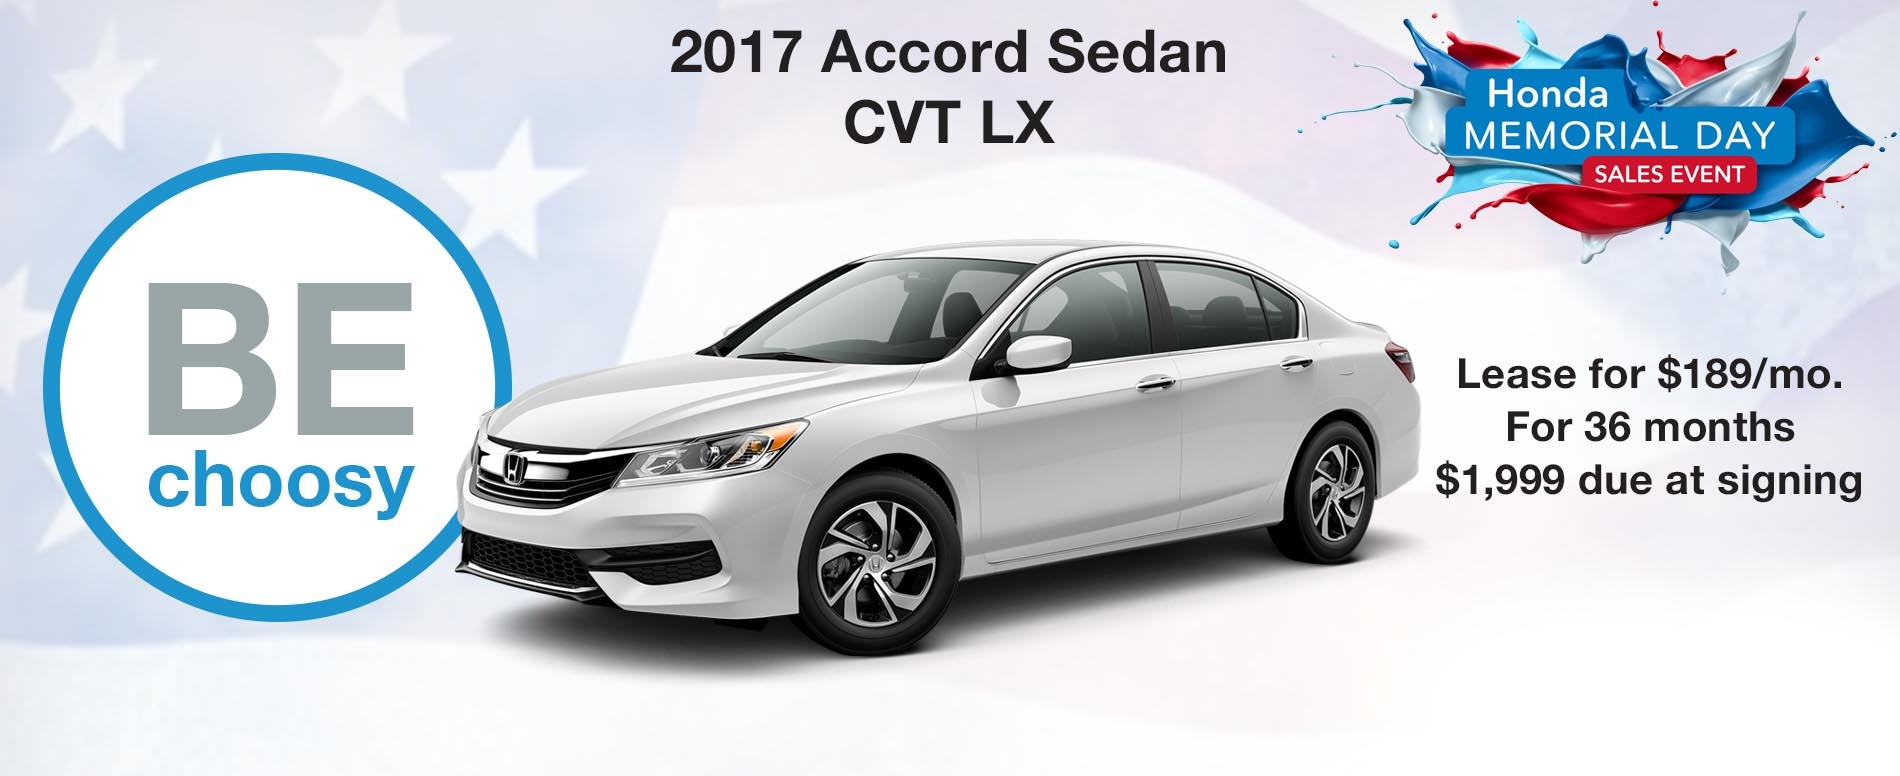 BE choosy. Lease a Honda Accord LX for $189 per month with $1,999 due at signing.